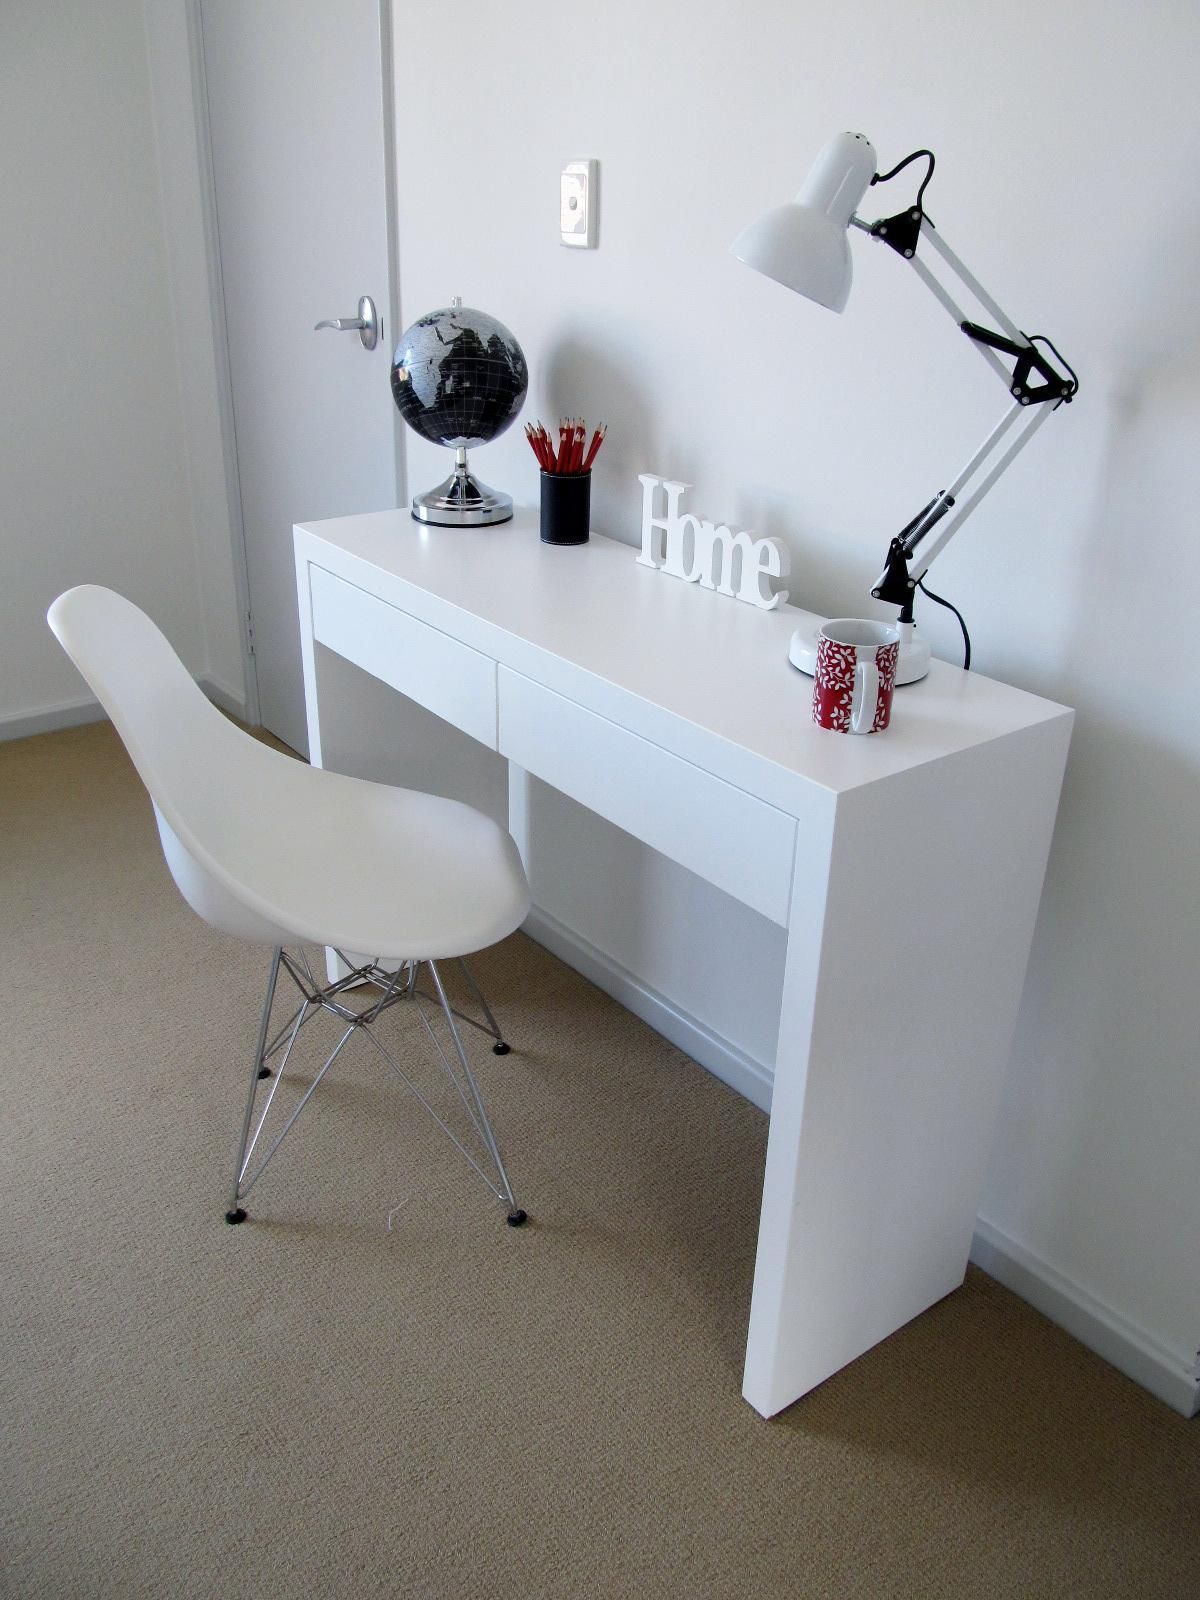 Bedroom Study Table And Chair White desk chair, White